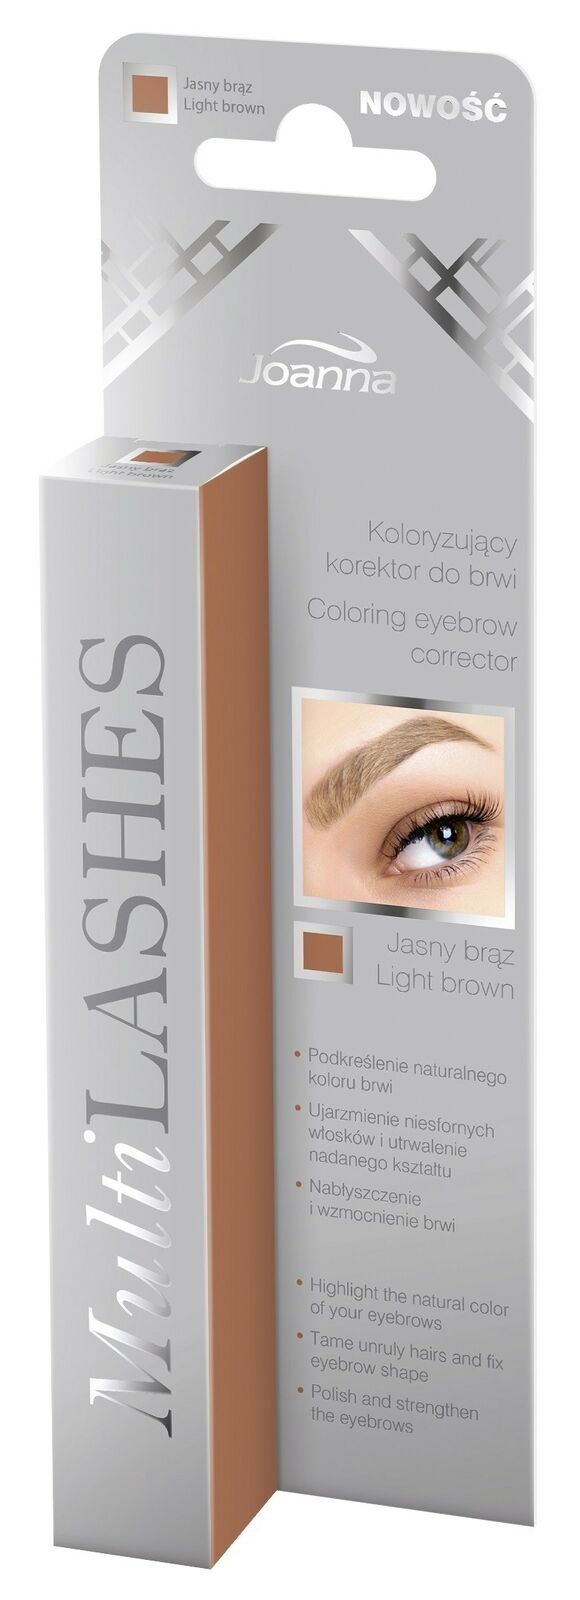 Joanna MultiLashes Coloring eyebrow corrector 3 light brown